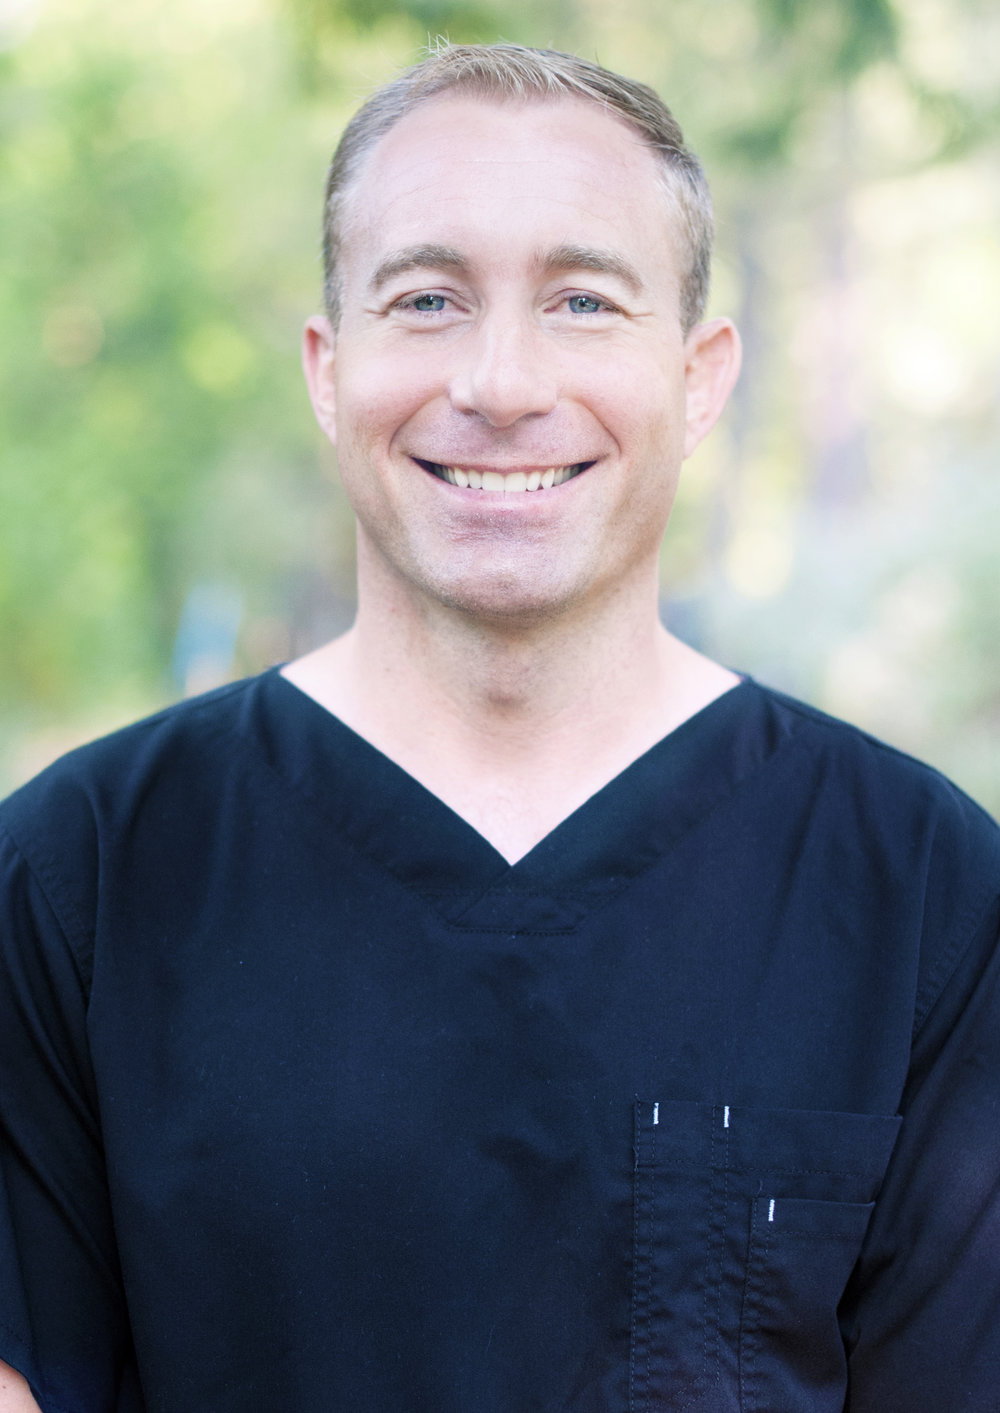 Dr. Joseph Miller is California Dental Board Certified to perform Oral Conscious Sedation. - Certificate # 0CS3706